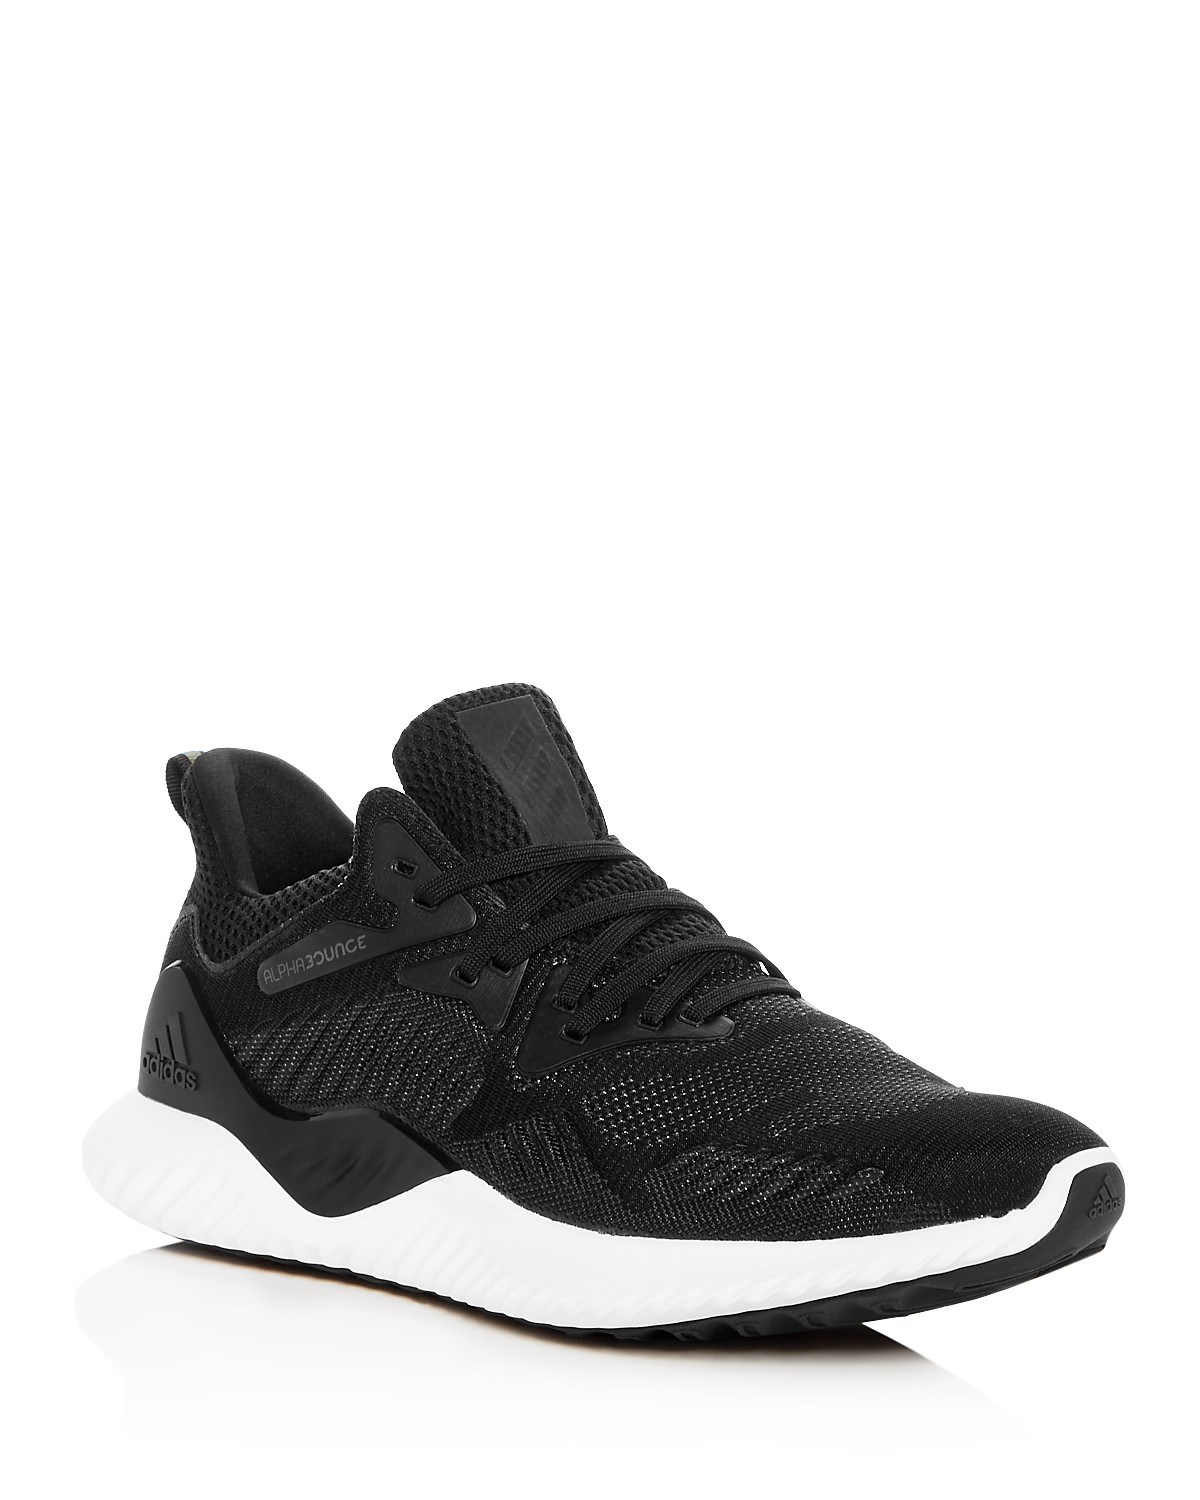 adidas Men's Alphabounce Beyond Lace Up Sneakers uj3ZrSo